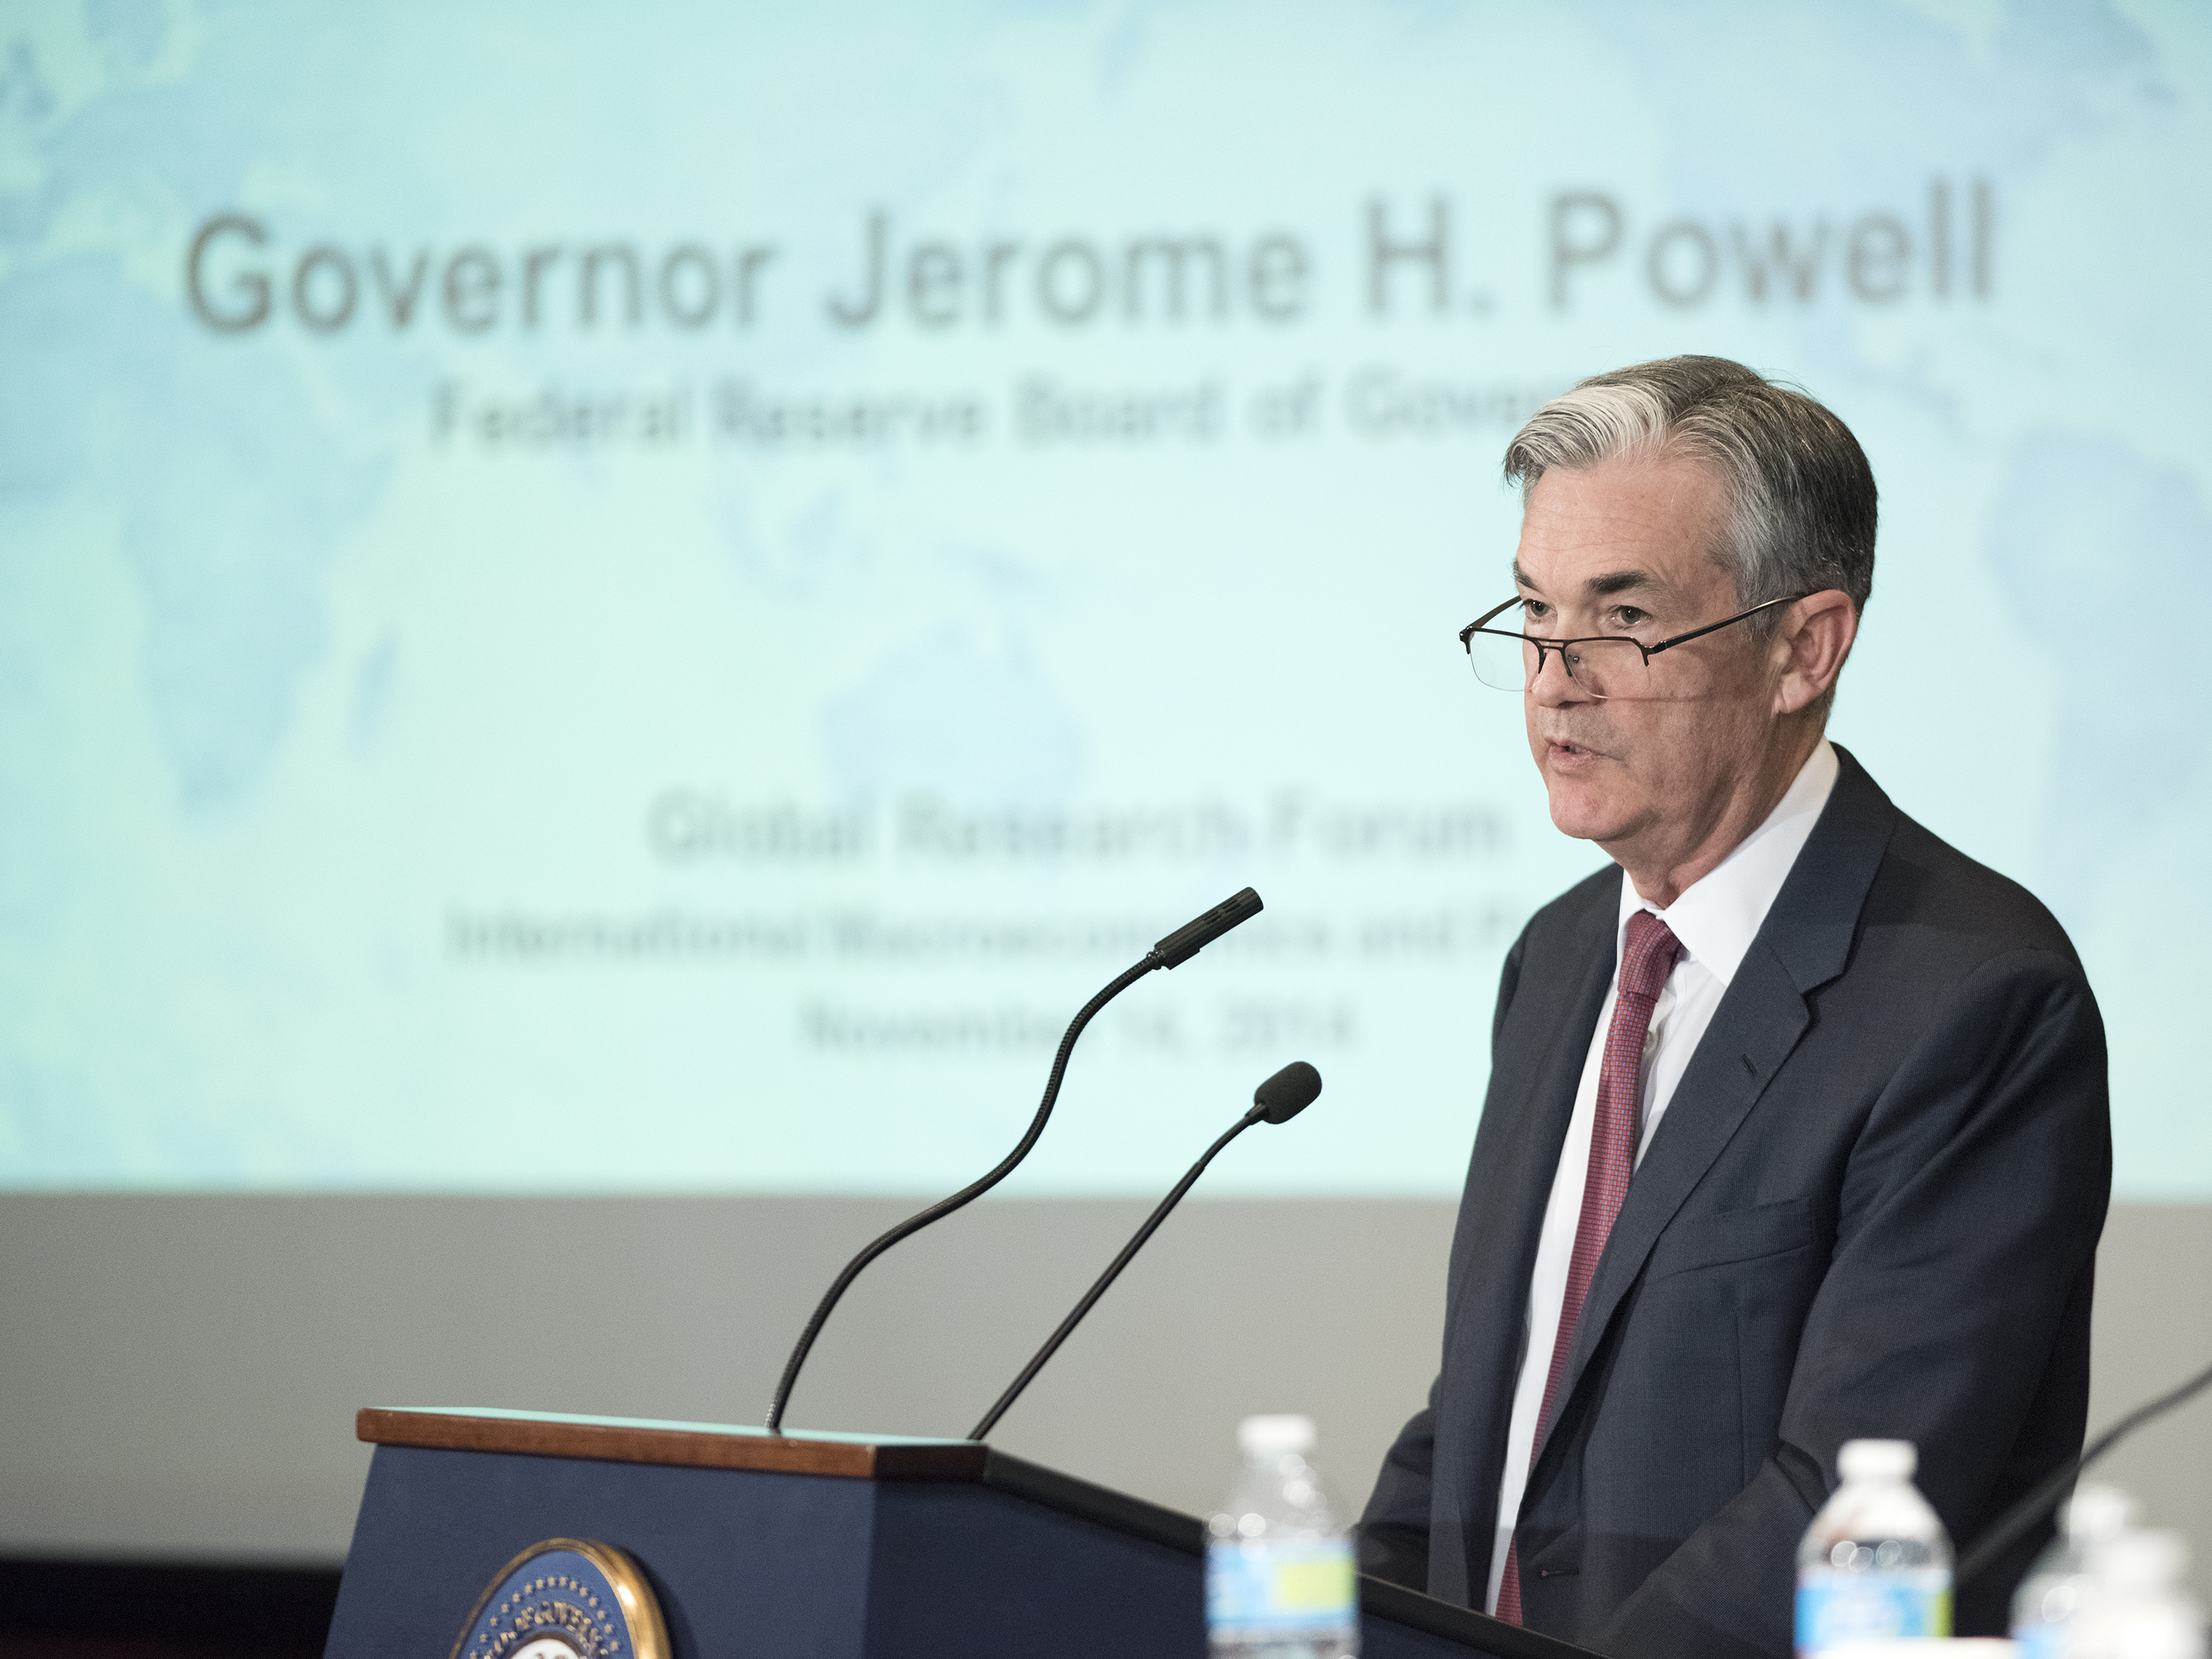 A photograph shows Fed Chairperson Jay Powell speaking at a podium.